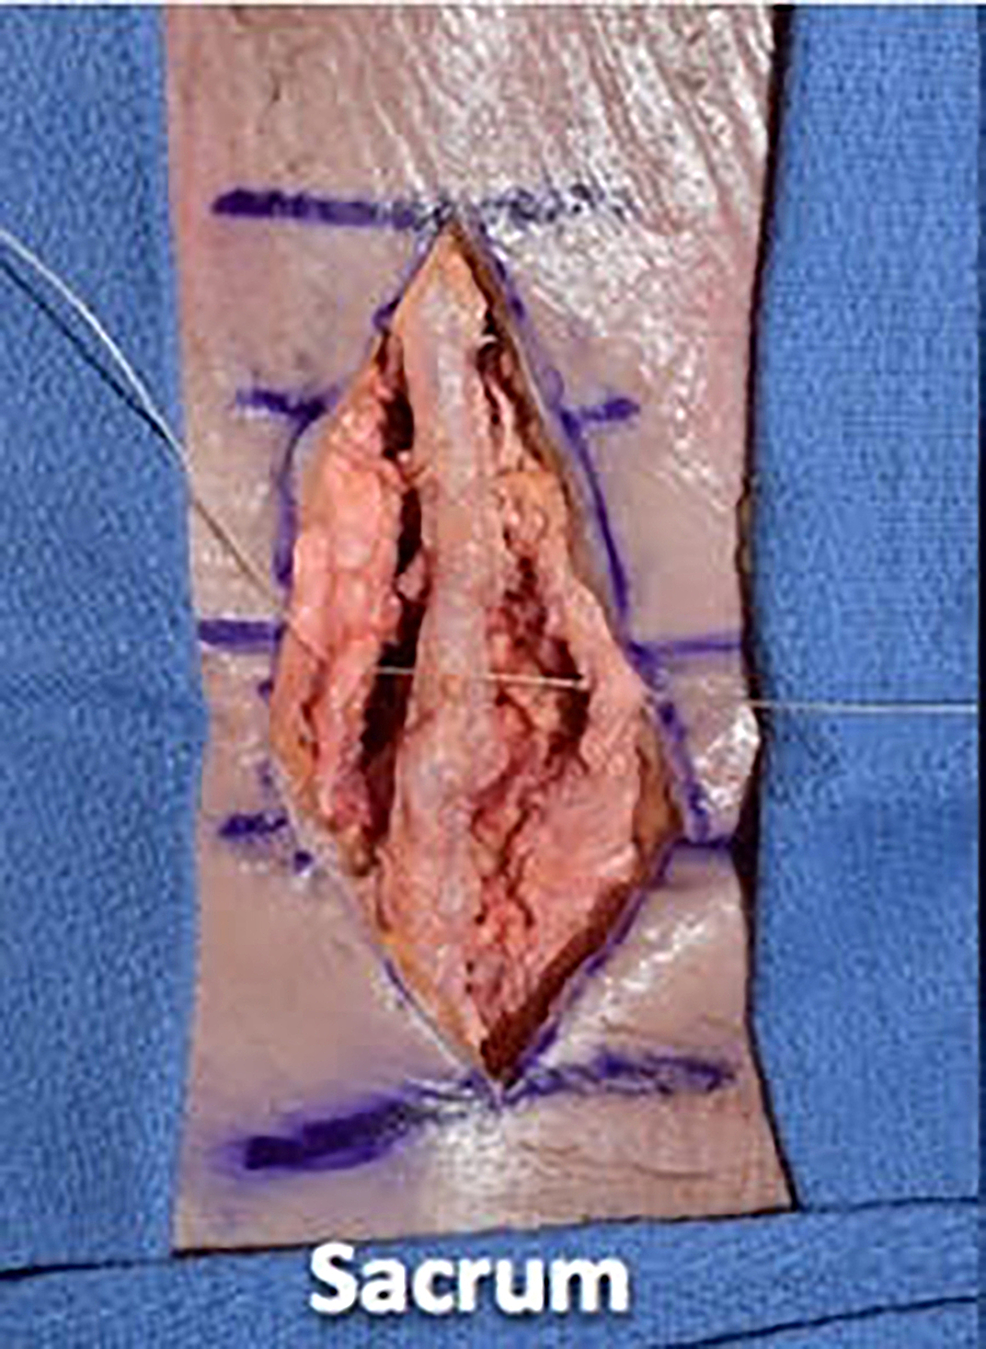 We-then-proceeded-with-wound-closure,-first-using-0-vicryl-suture-to-tightly-reapproximate-the-fascial-layer-using-a-simple-interrupted-technique